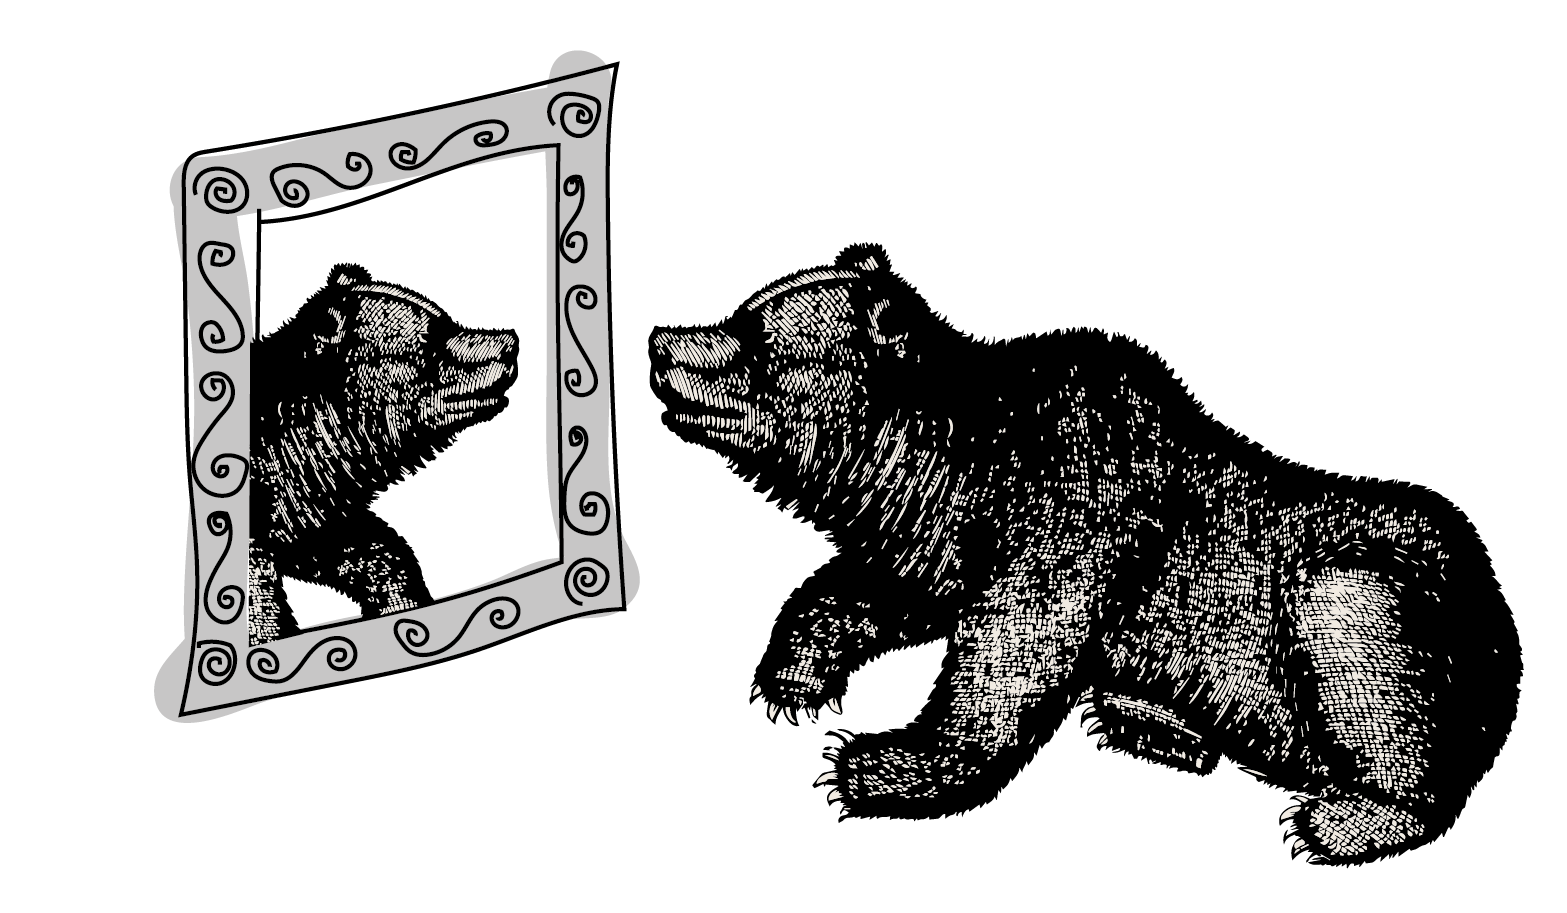 Bear looking in mirror